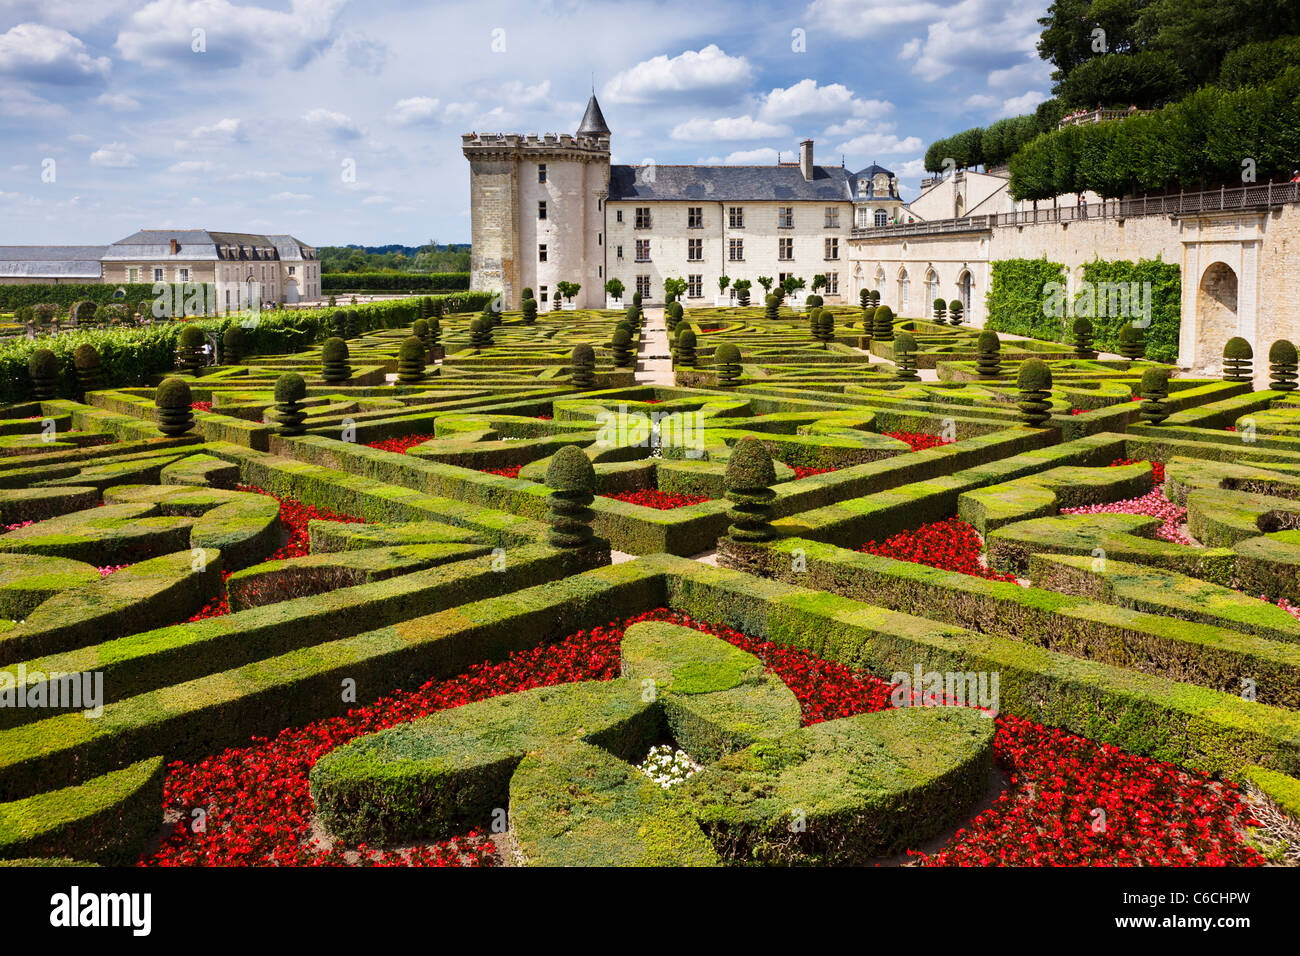 Villandry chateau, Loire Valley - looking across the Love Gardens at this famous Loire chateau, Indre et Loire, - Stock Image